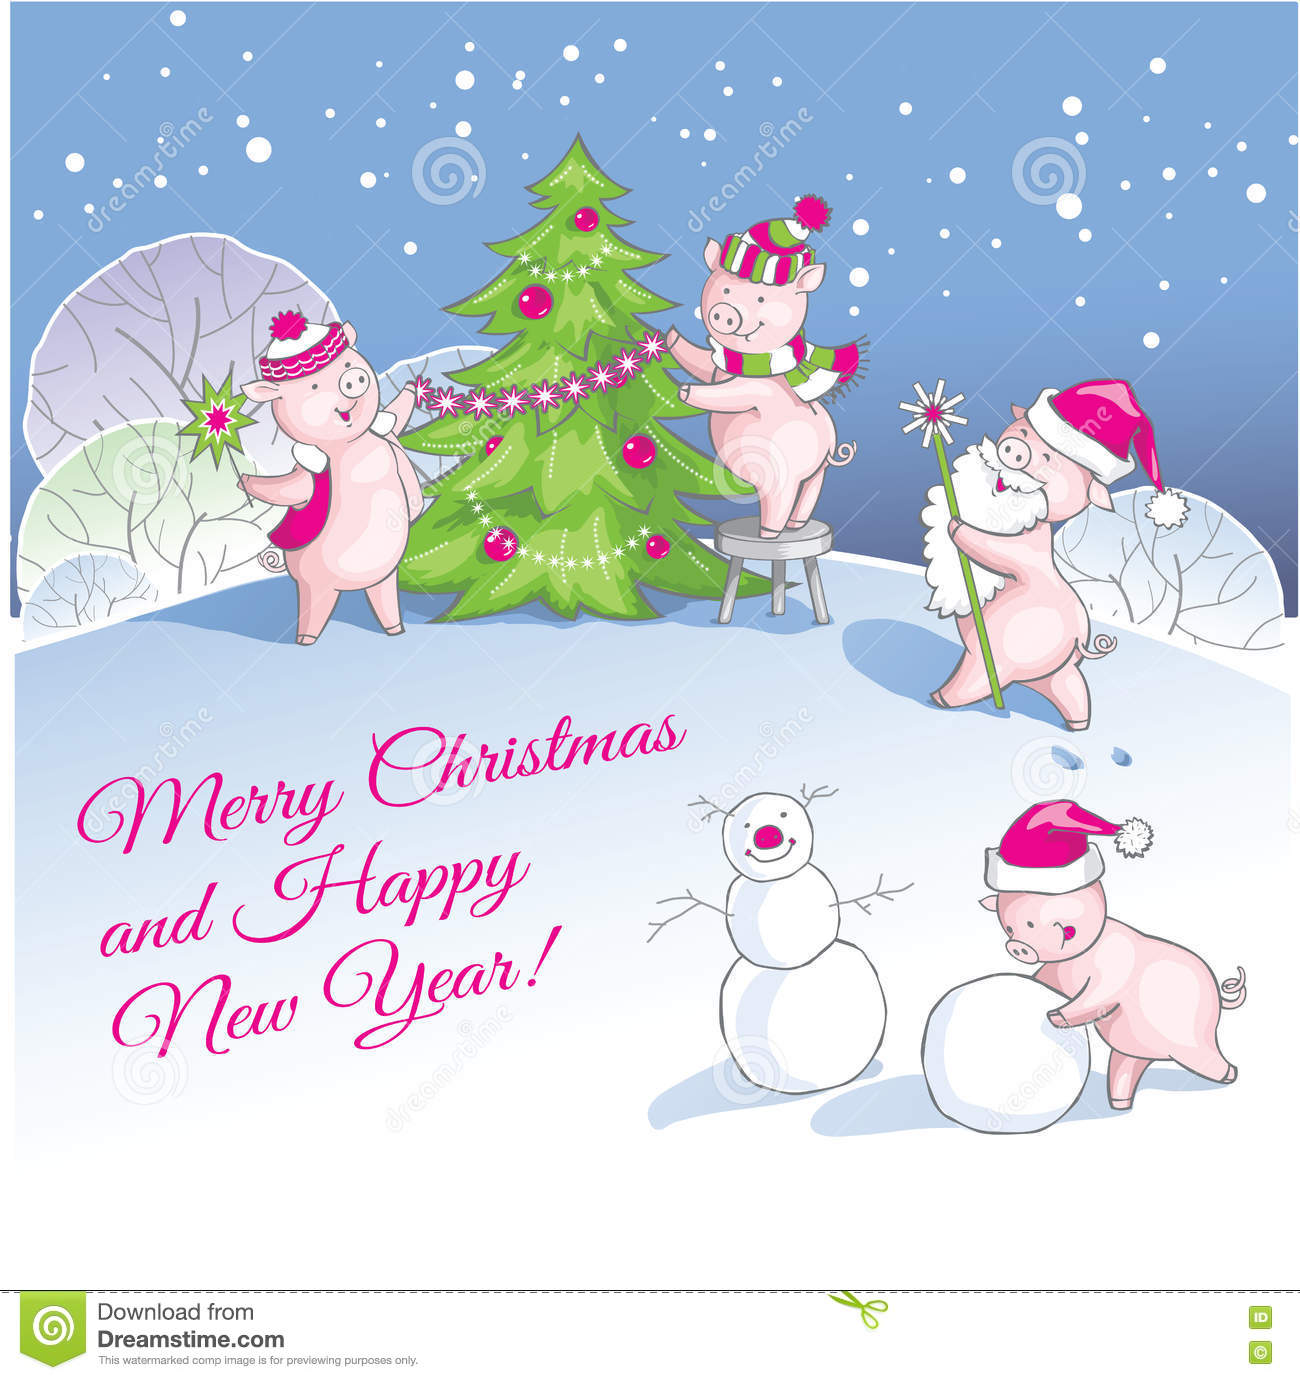 Greeting Christmas And New Year Card With Nice Pigs Stock Vector